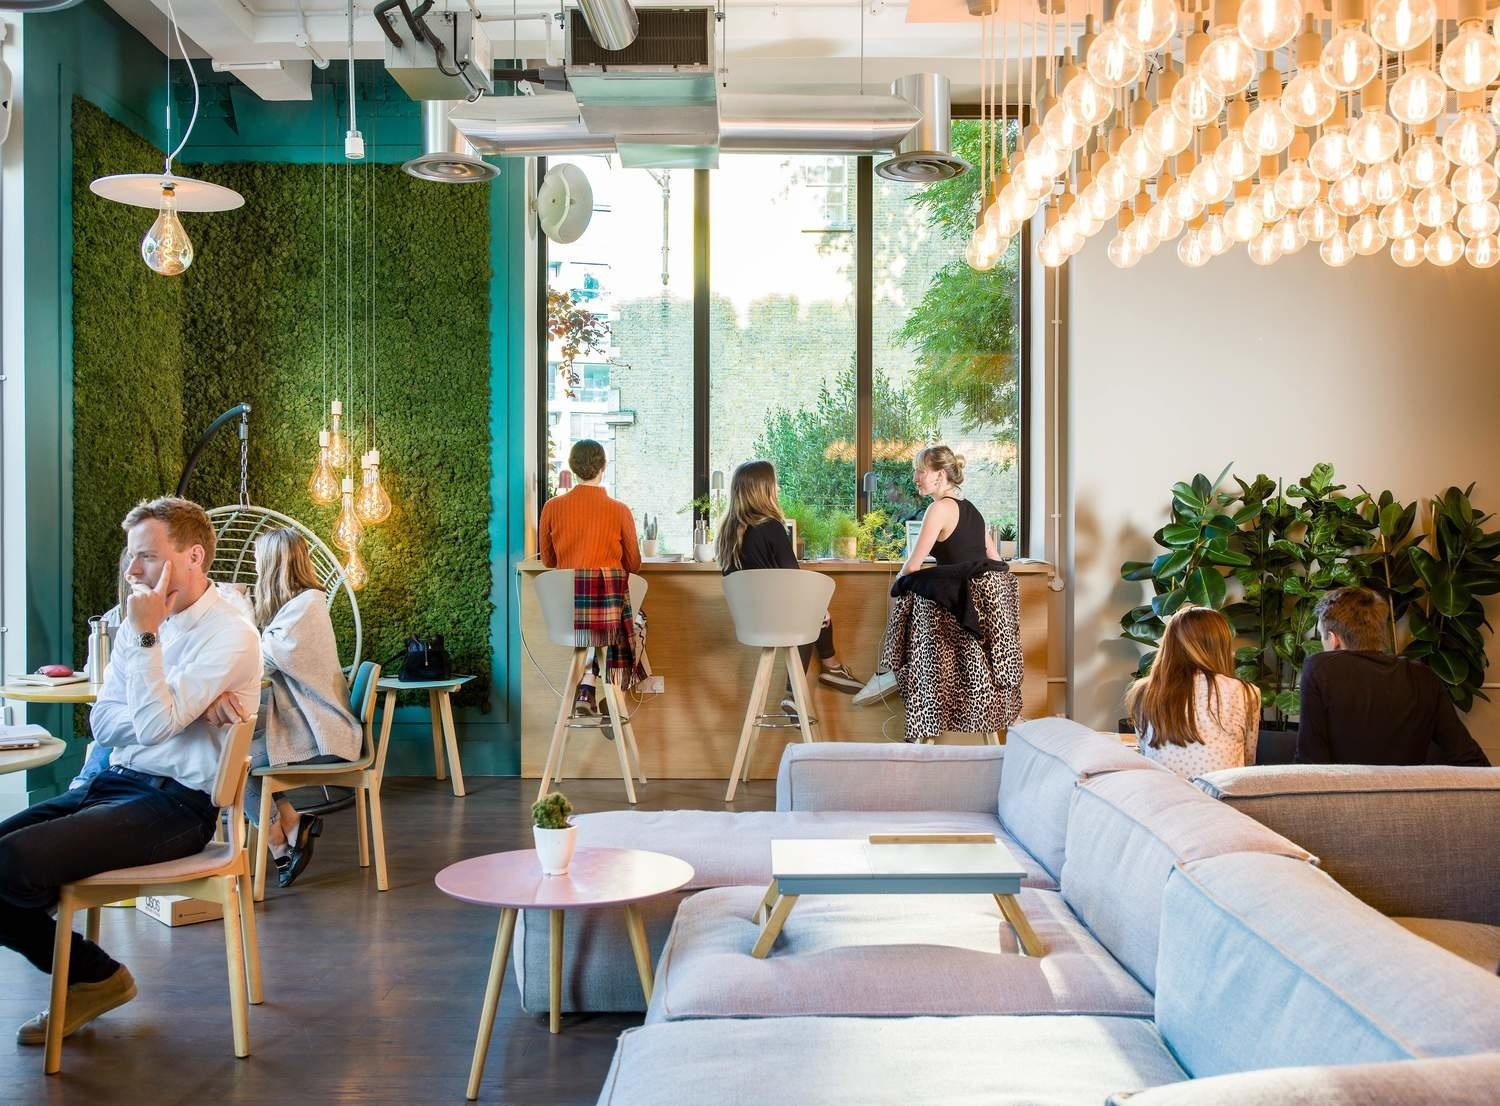 4 Coworking spaces in London that care about your wellbeing